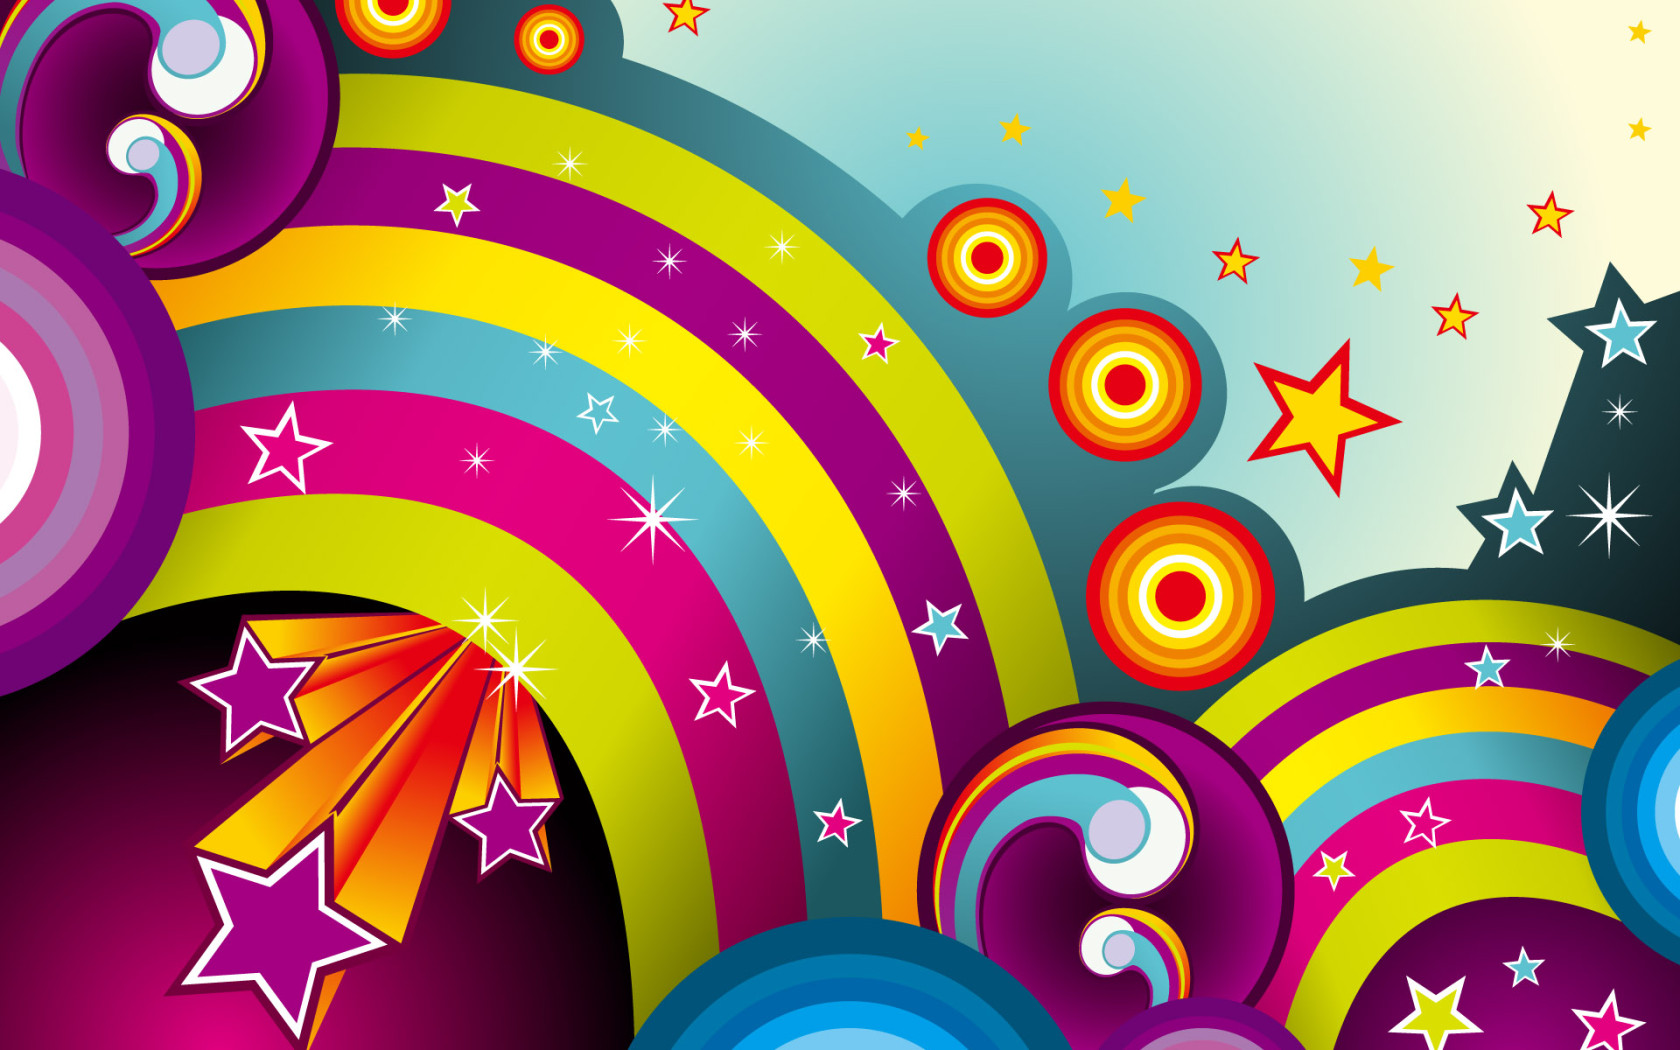 Custom-Graphics-that-are-based-on-Vectors-and-Versatility-wallpaper-wp3604433